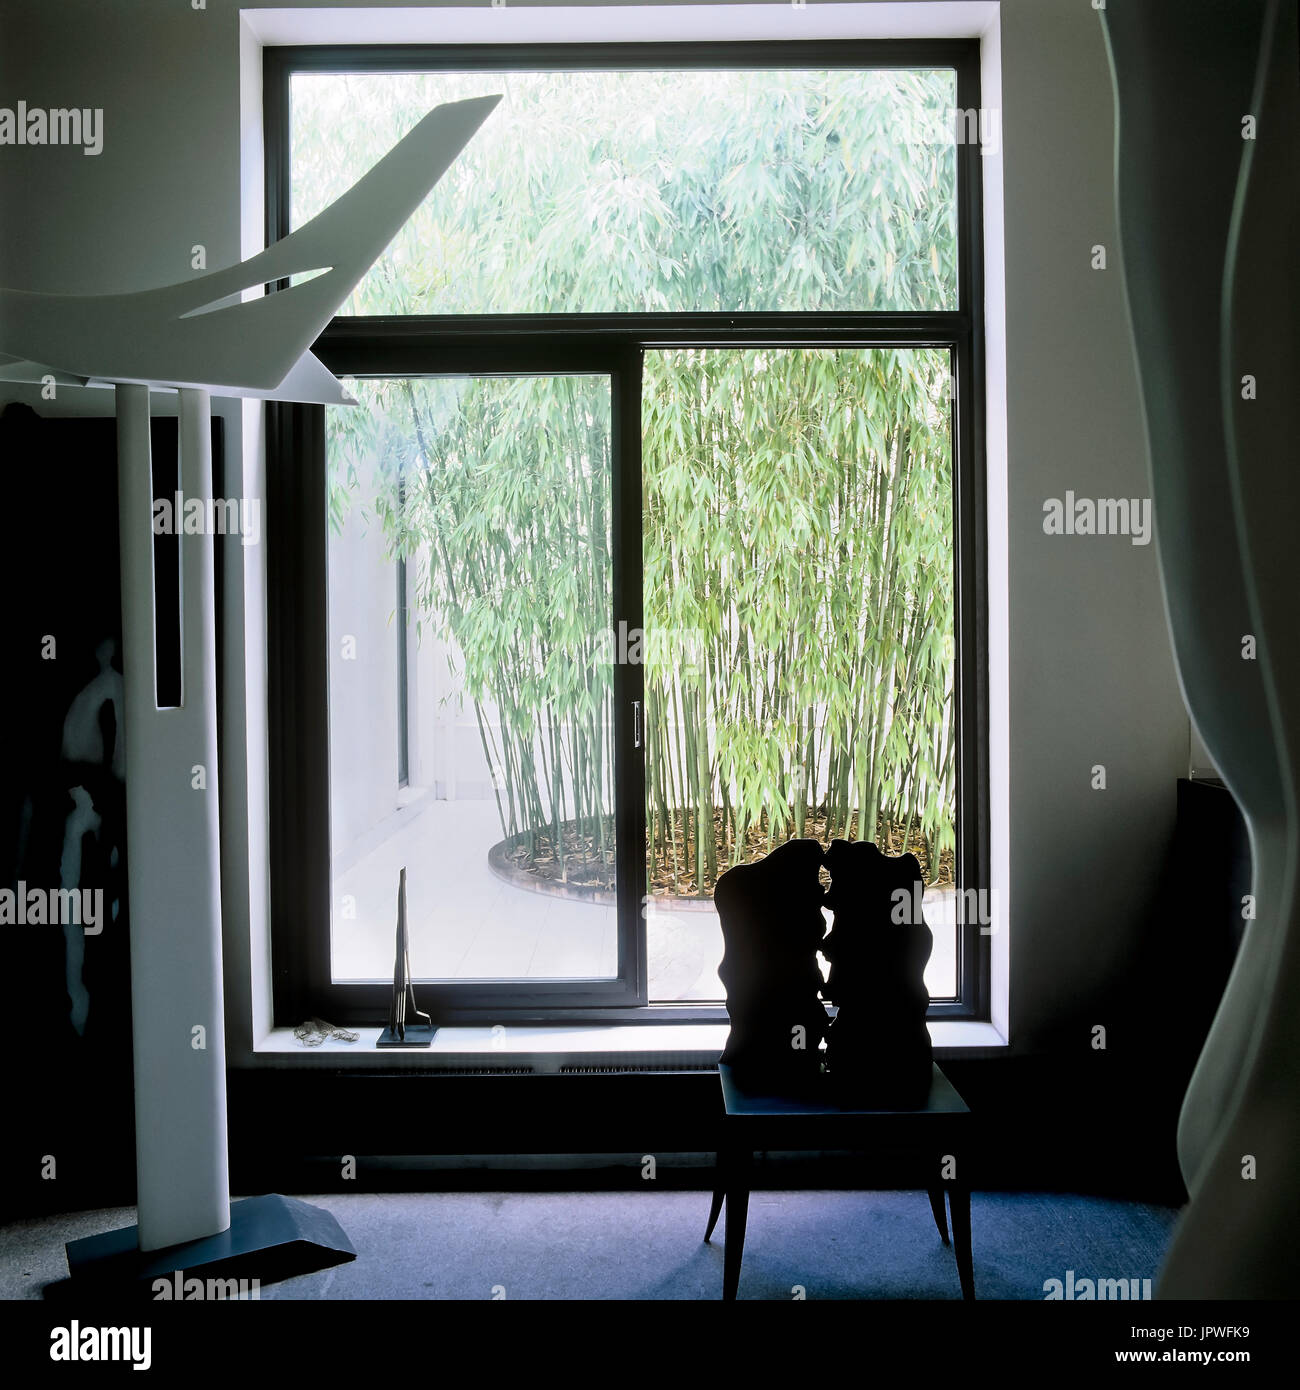 Contemporary art by window - Stock Image